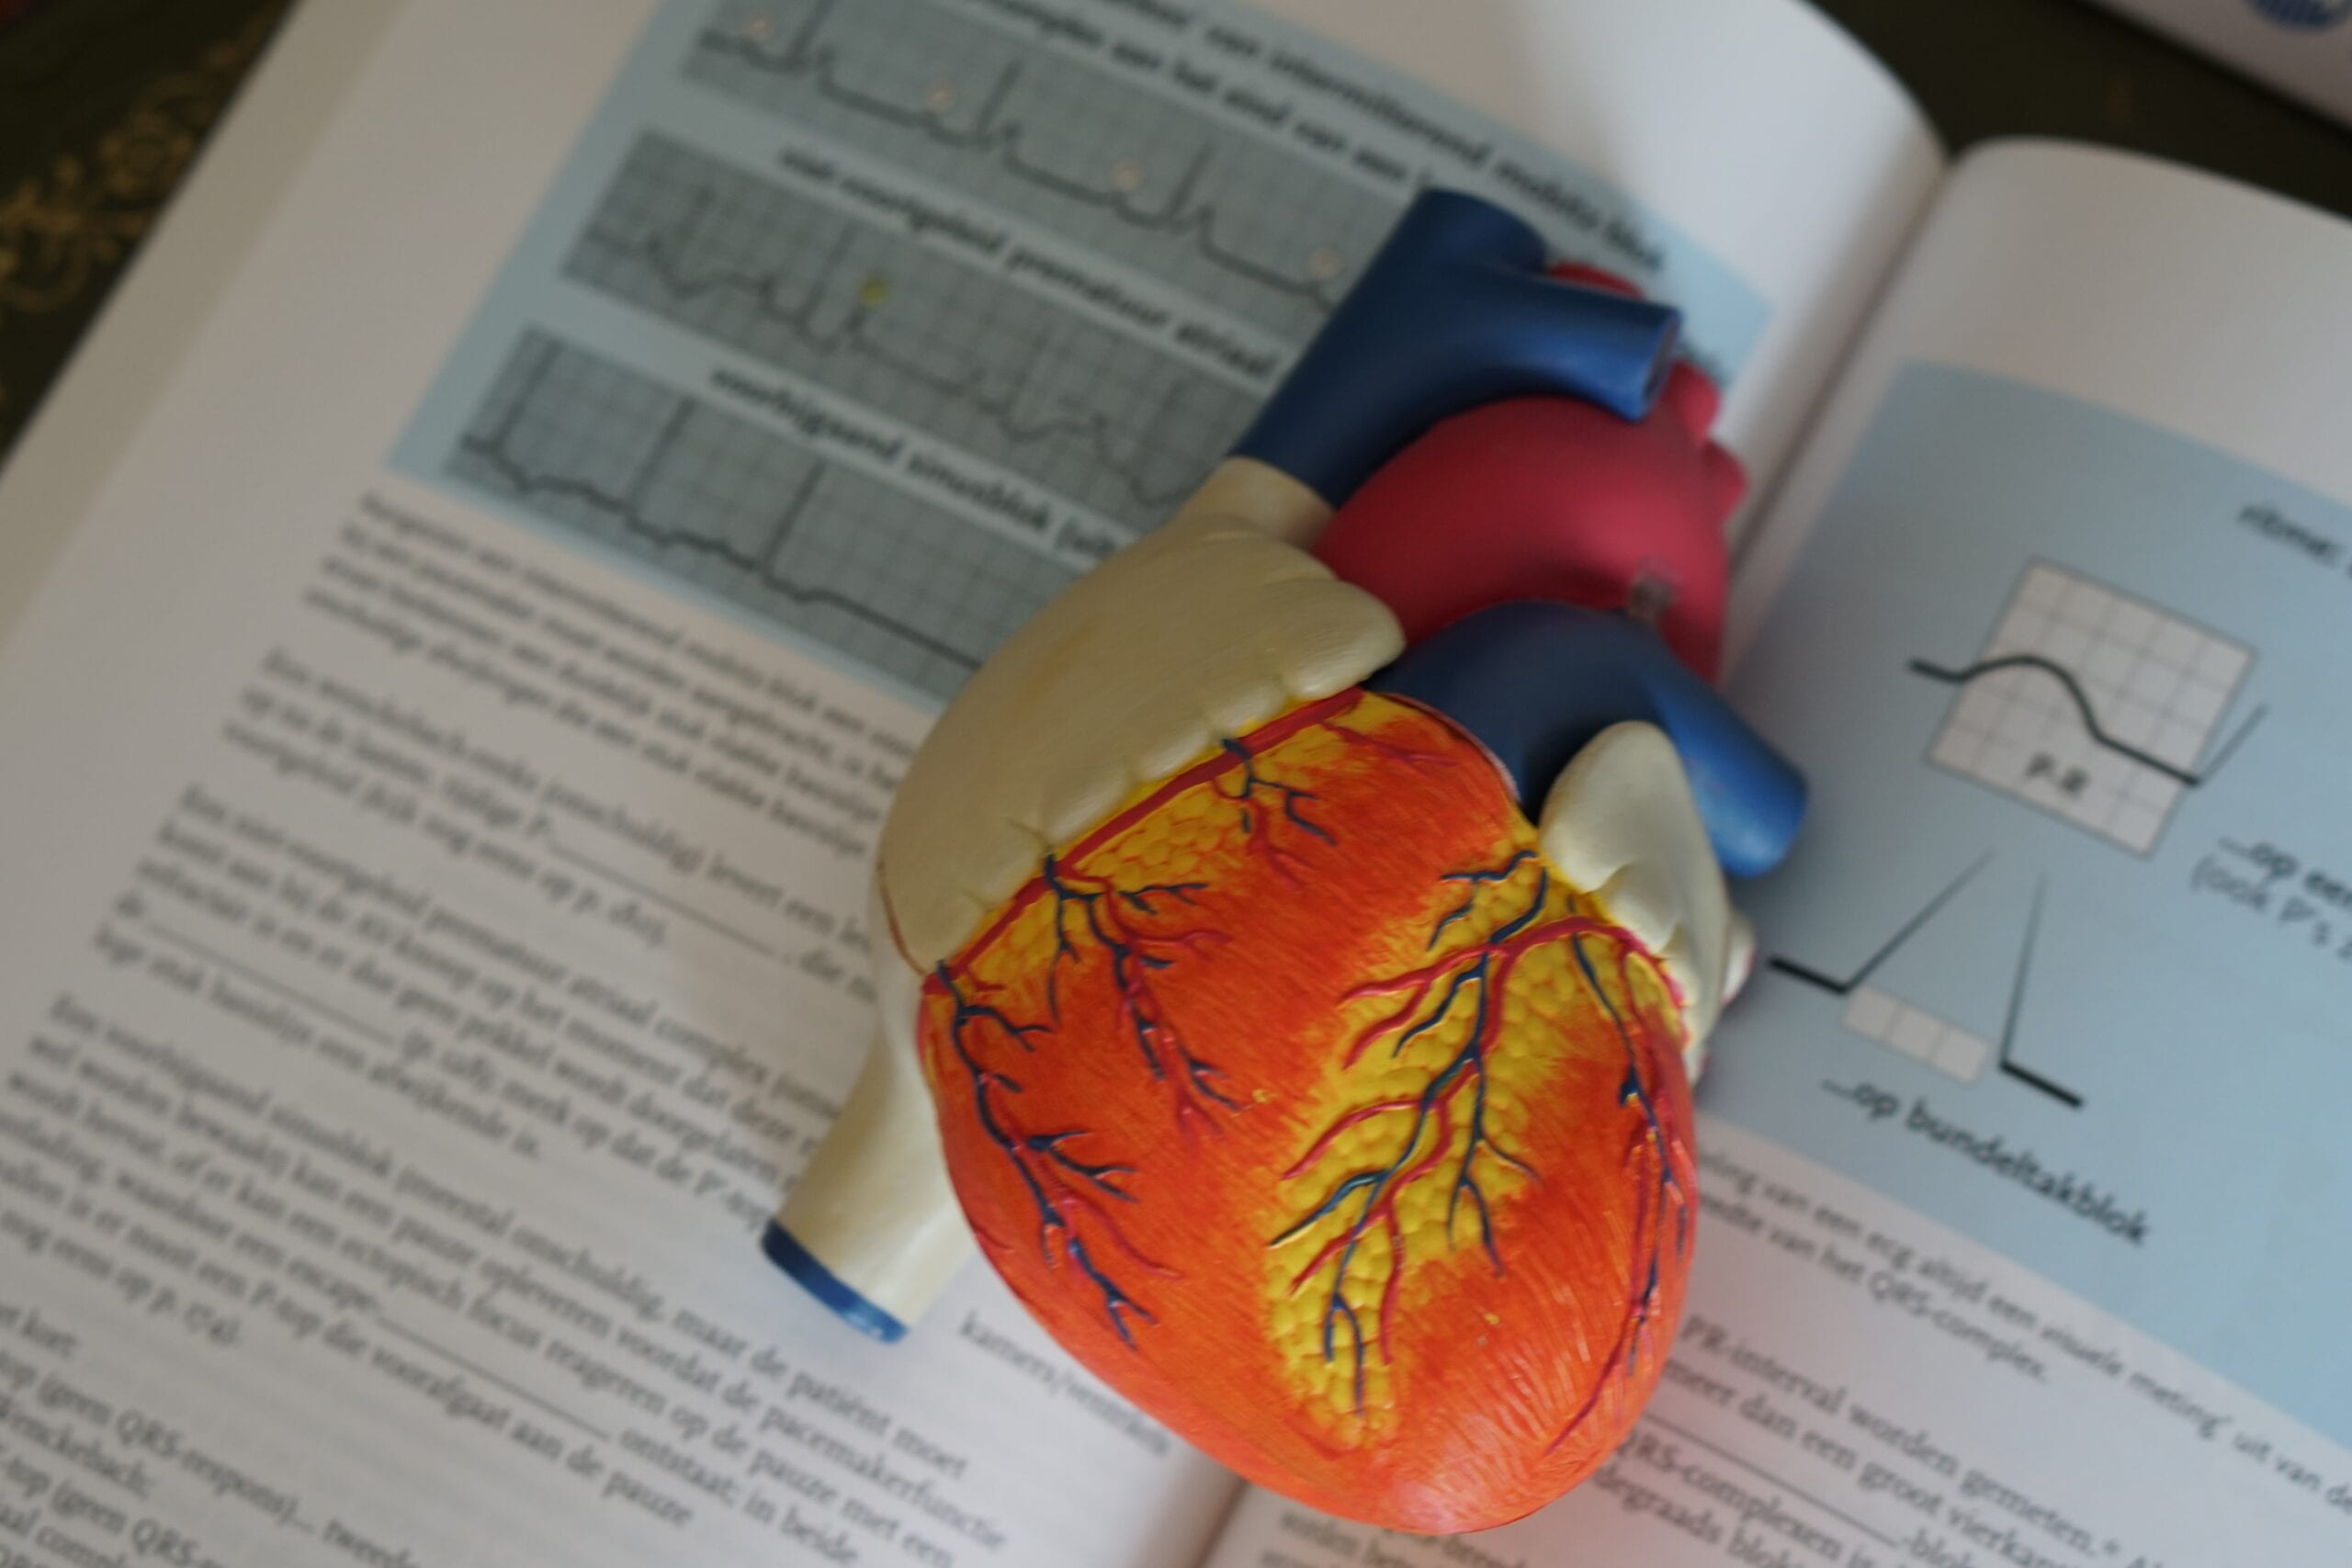 Heart on text book. xxxx applied her theoretical knowledge to her practicum site in her first on hands experience as a cardiologist.